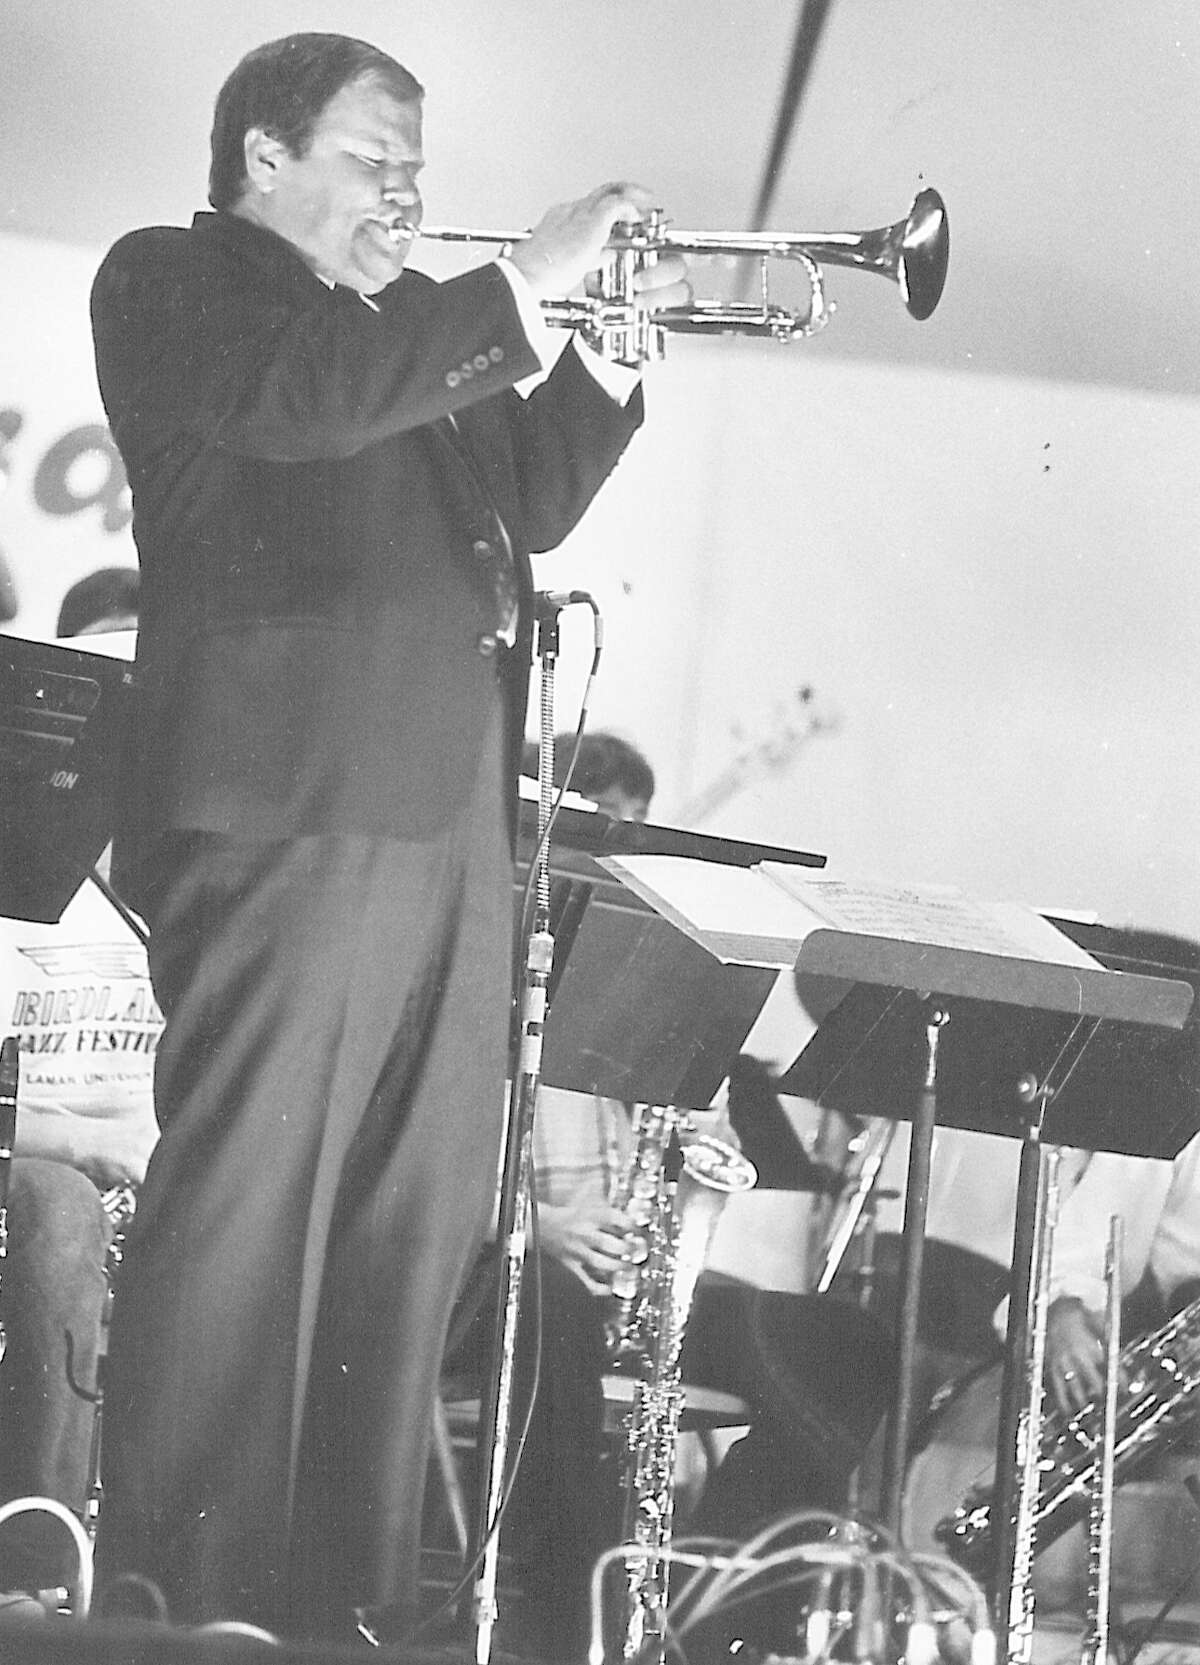 Jack Sheldon blows a mean trumpet while jamming with the Lamar Jazz Band at the Lamar Jazz Festival at the Jefferson Theatre. Photo undated